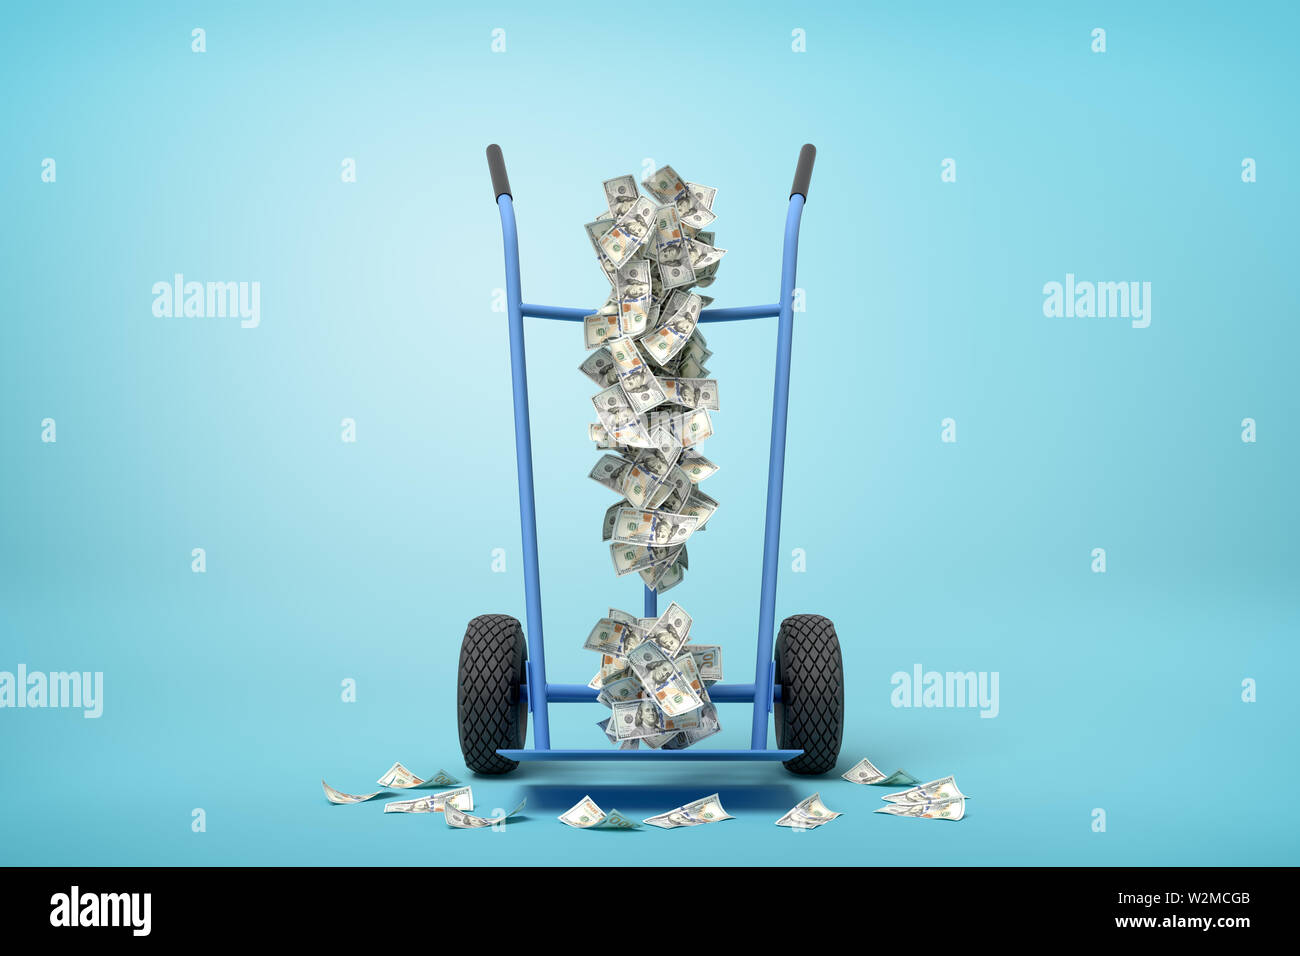 3d rendering of hand truck standing in half-turn with exclamation mark made up of dollar banknotes on it on light-blue background with copy space. - Stock Image